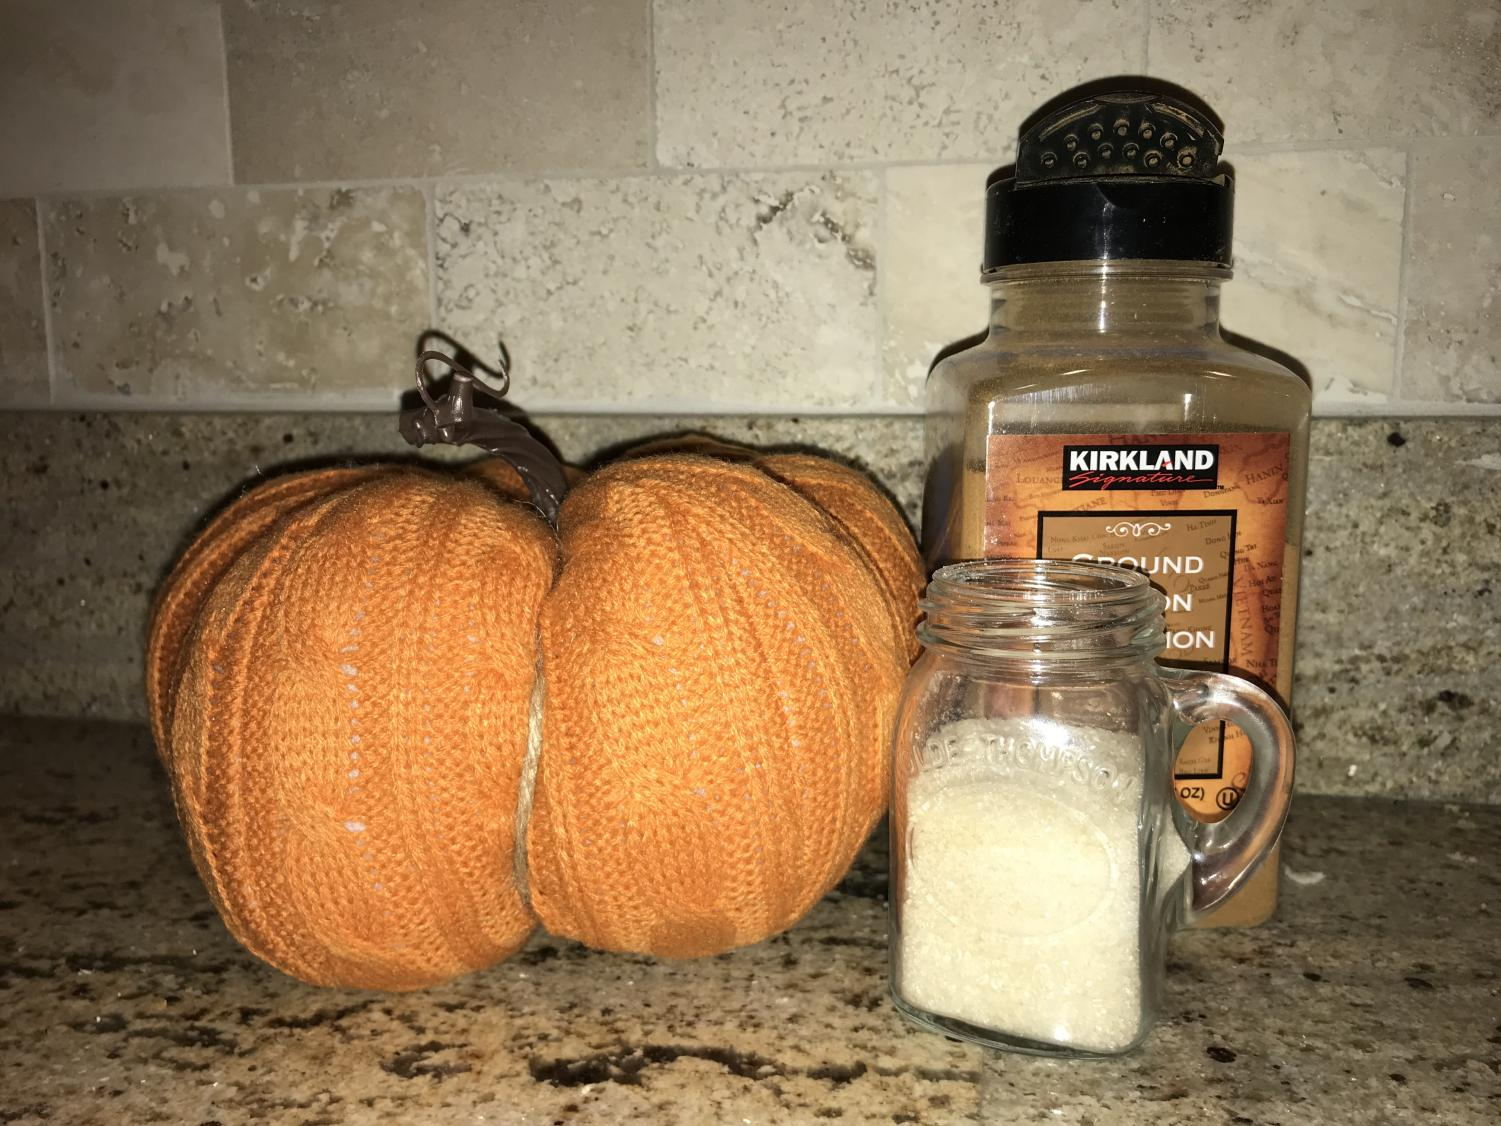 Pumpkin and spices like cinnamon are often used in fall foods. We used both of them to make roasted pumpkin seeds and pumpkin muffins.